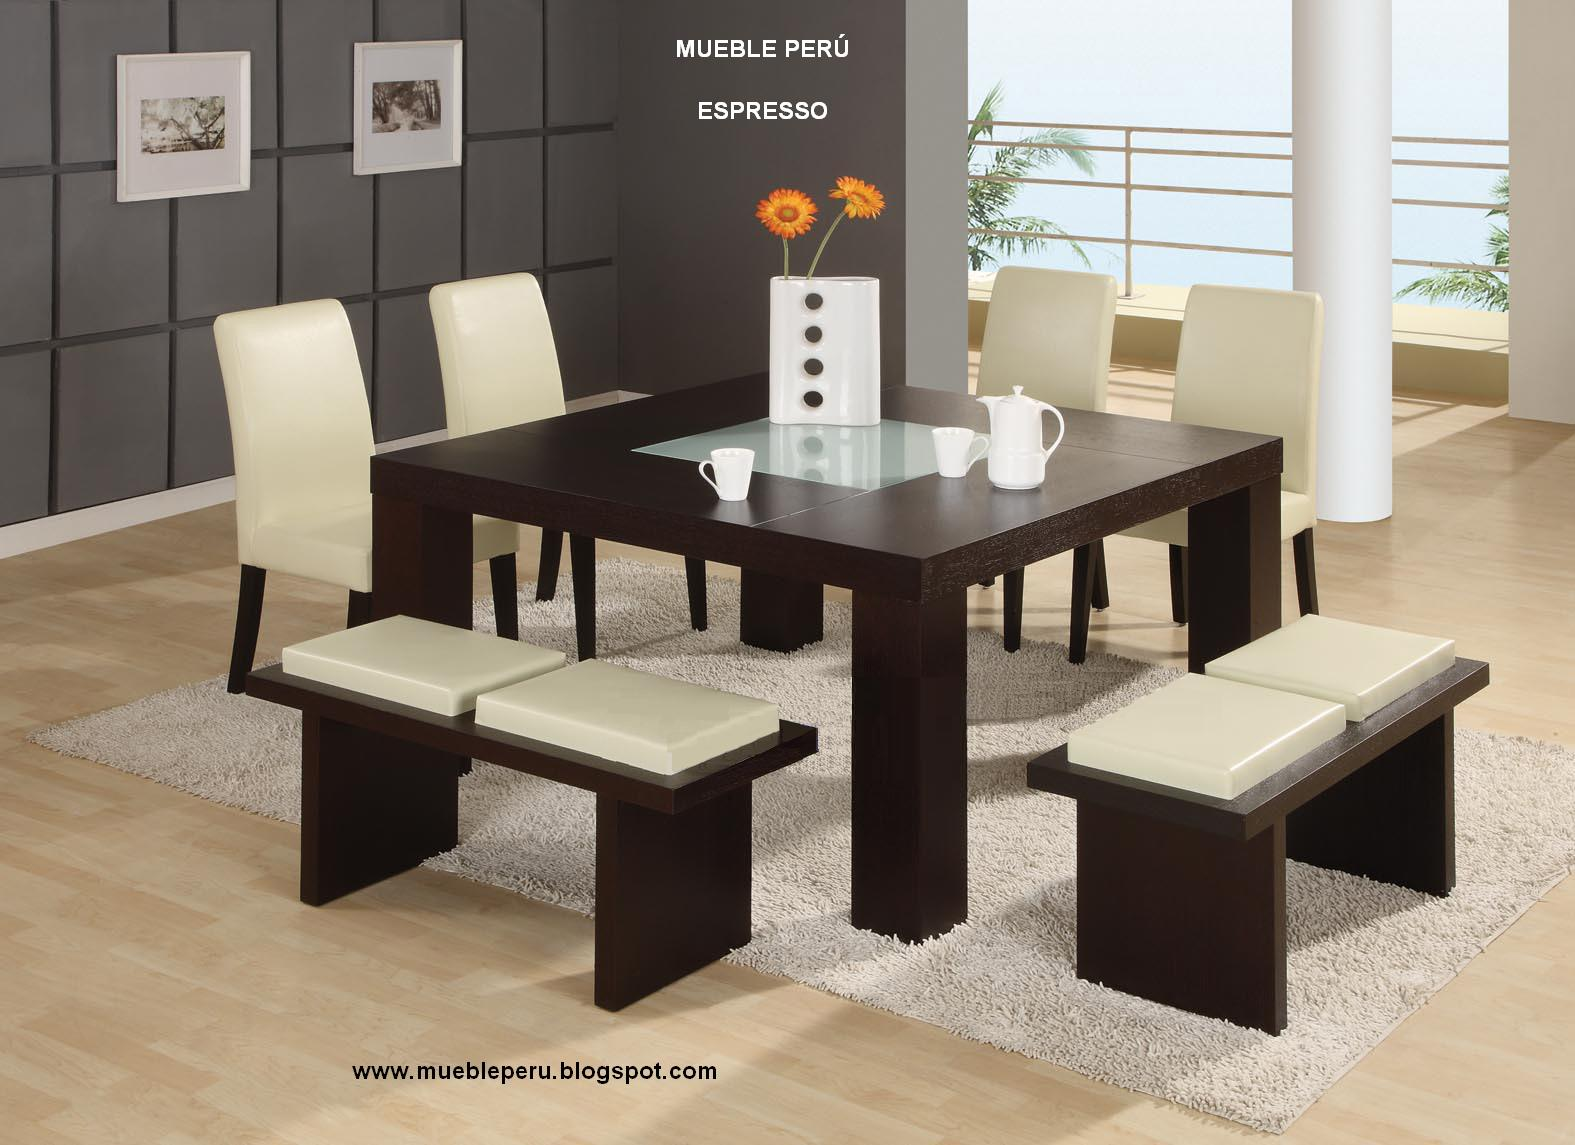 Muebles pegaso exclusivos y modernos comedores for Sillas altas modernas